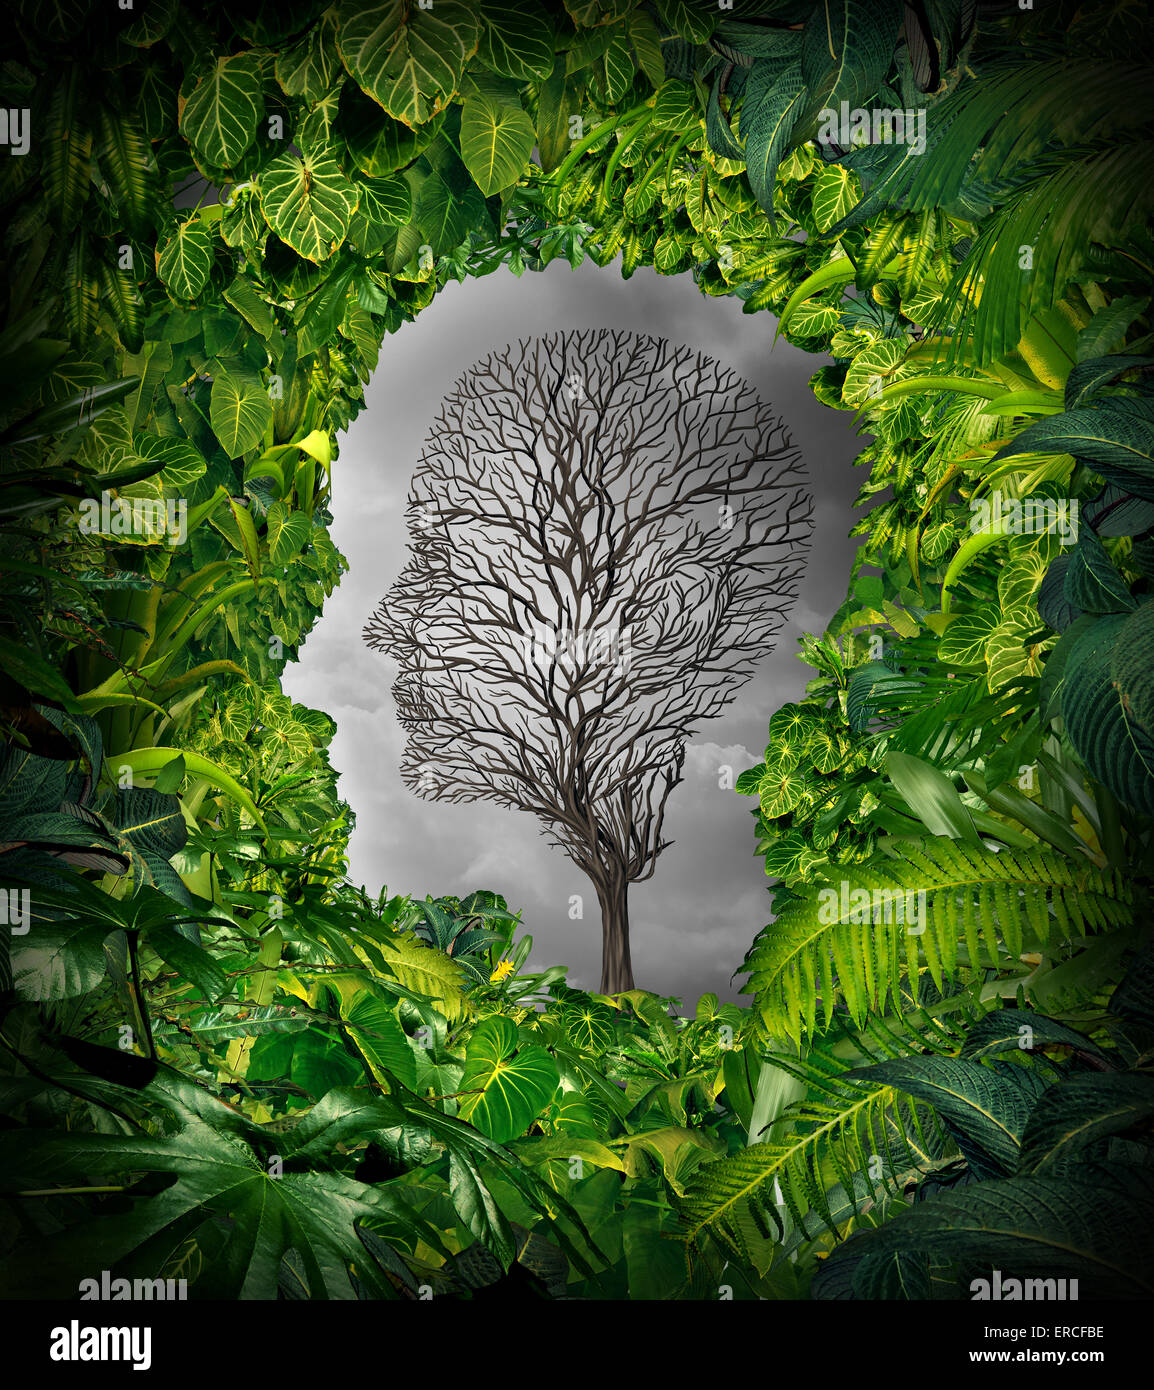 Inside depression concept and inner feelings of distress as a mental health symbol with a healthy green plant jungle - Stock Image